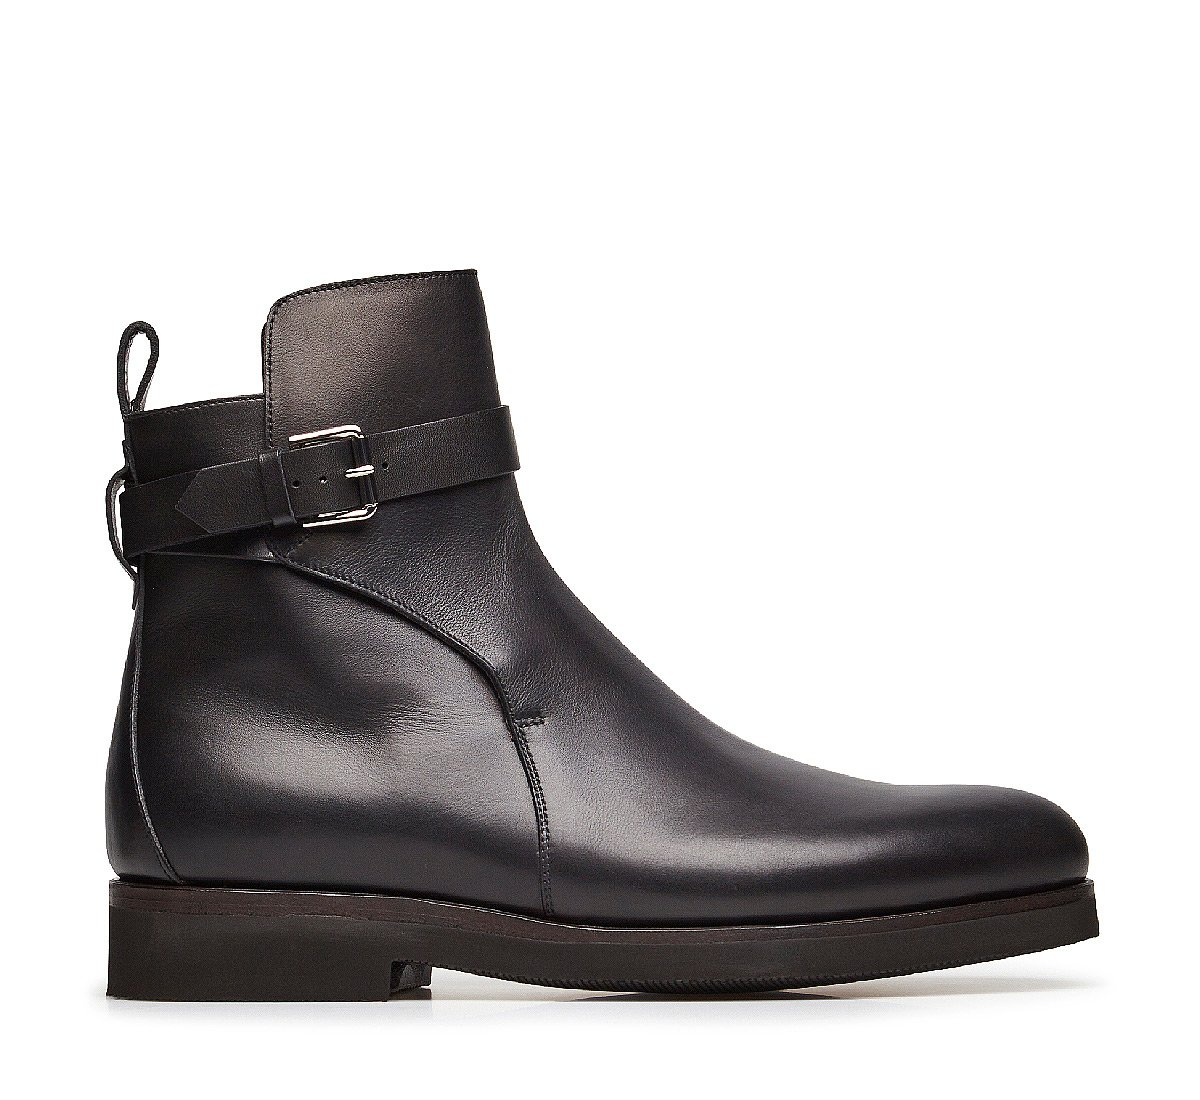 Online exclusive - Calfskin ankle boots